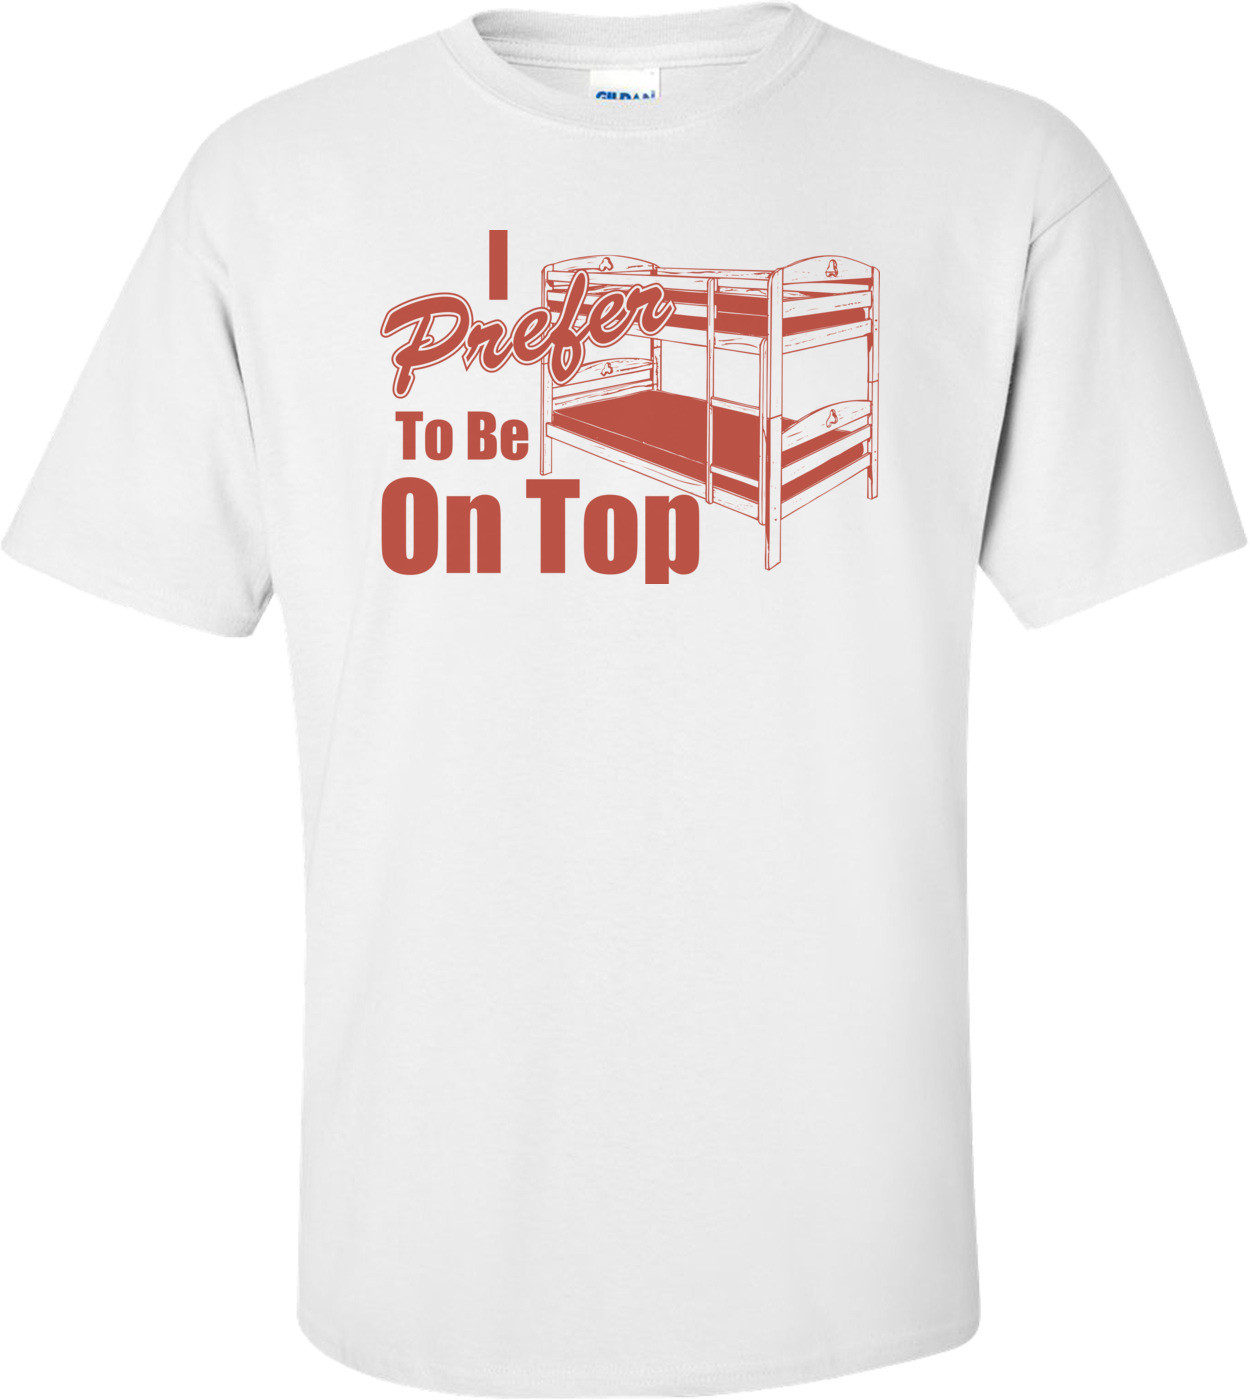 I Prefer To Be On Top T-shirt